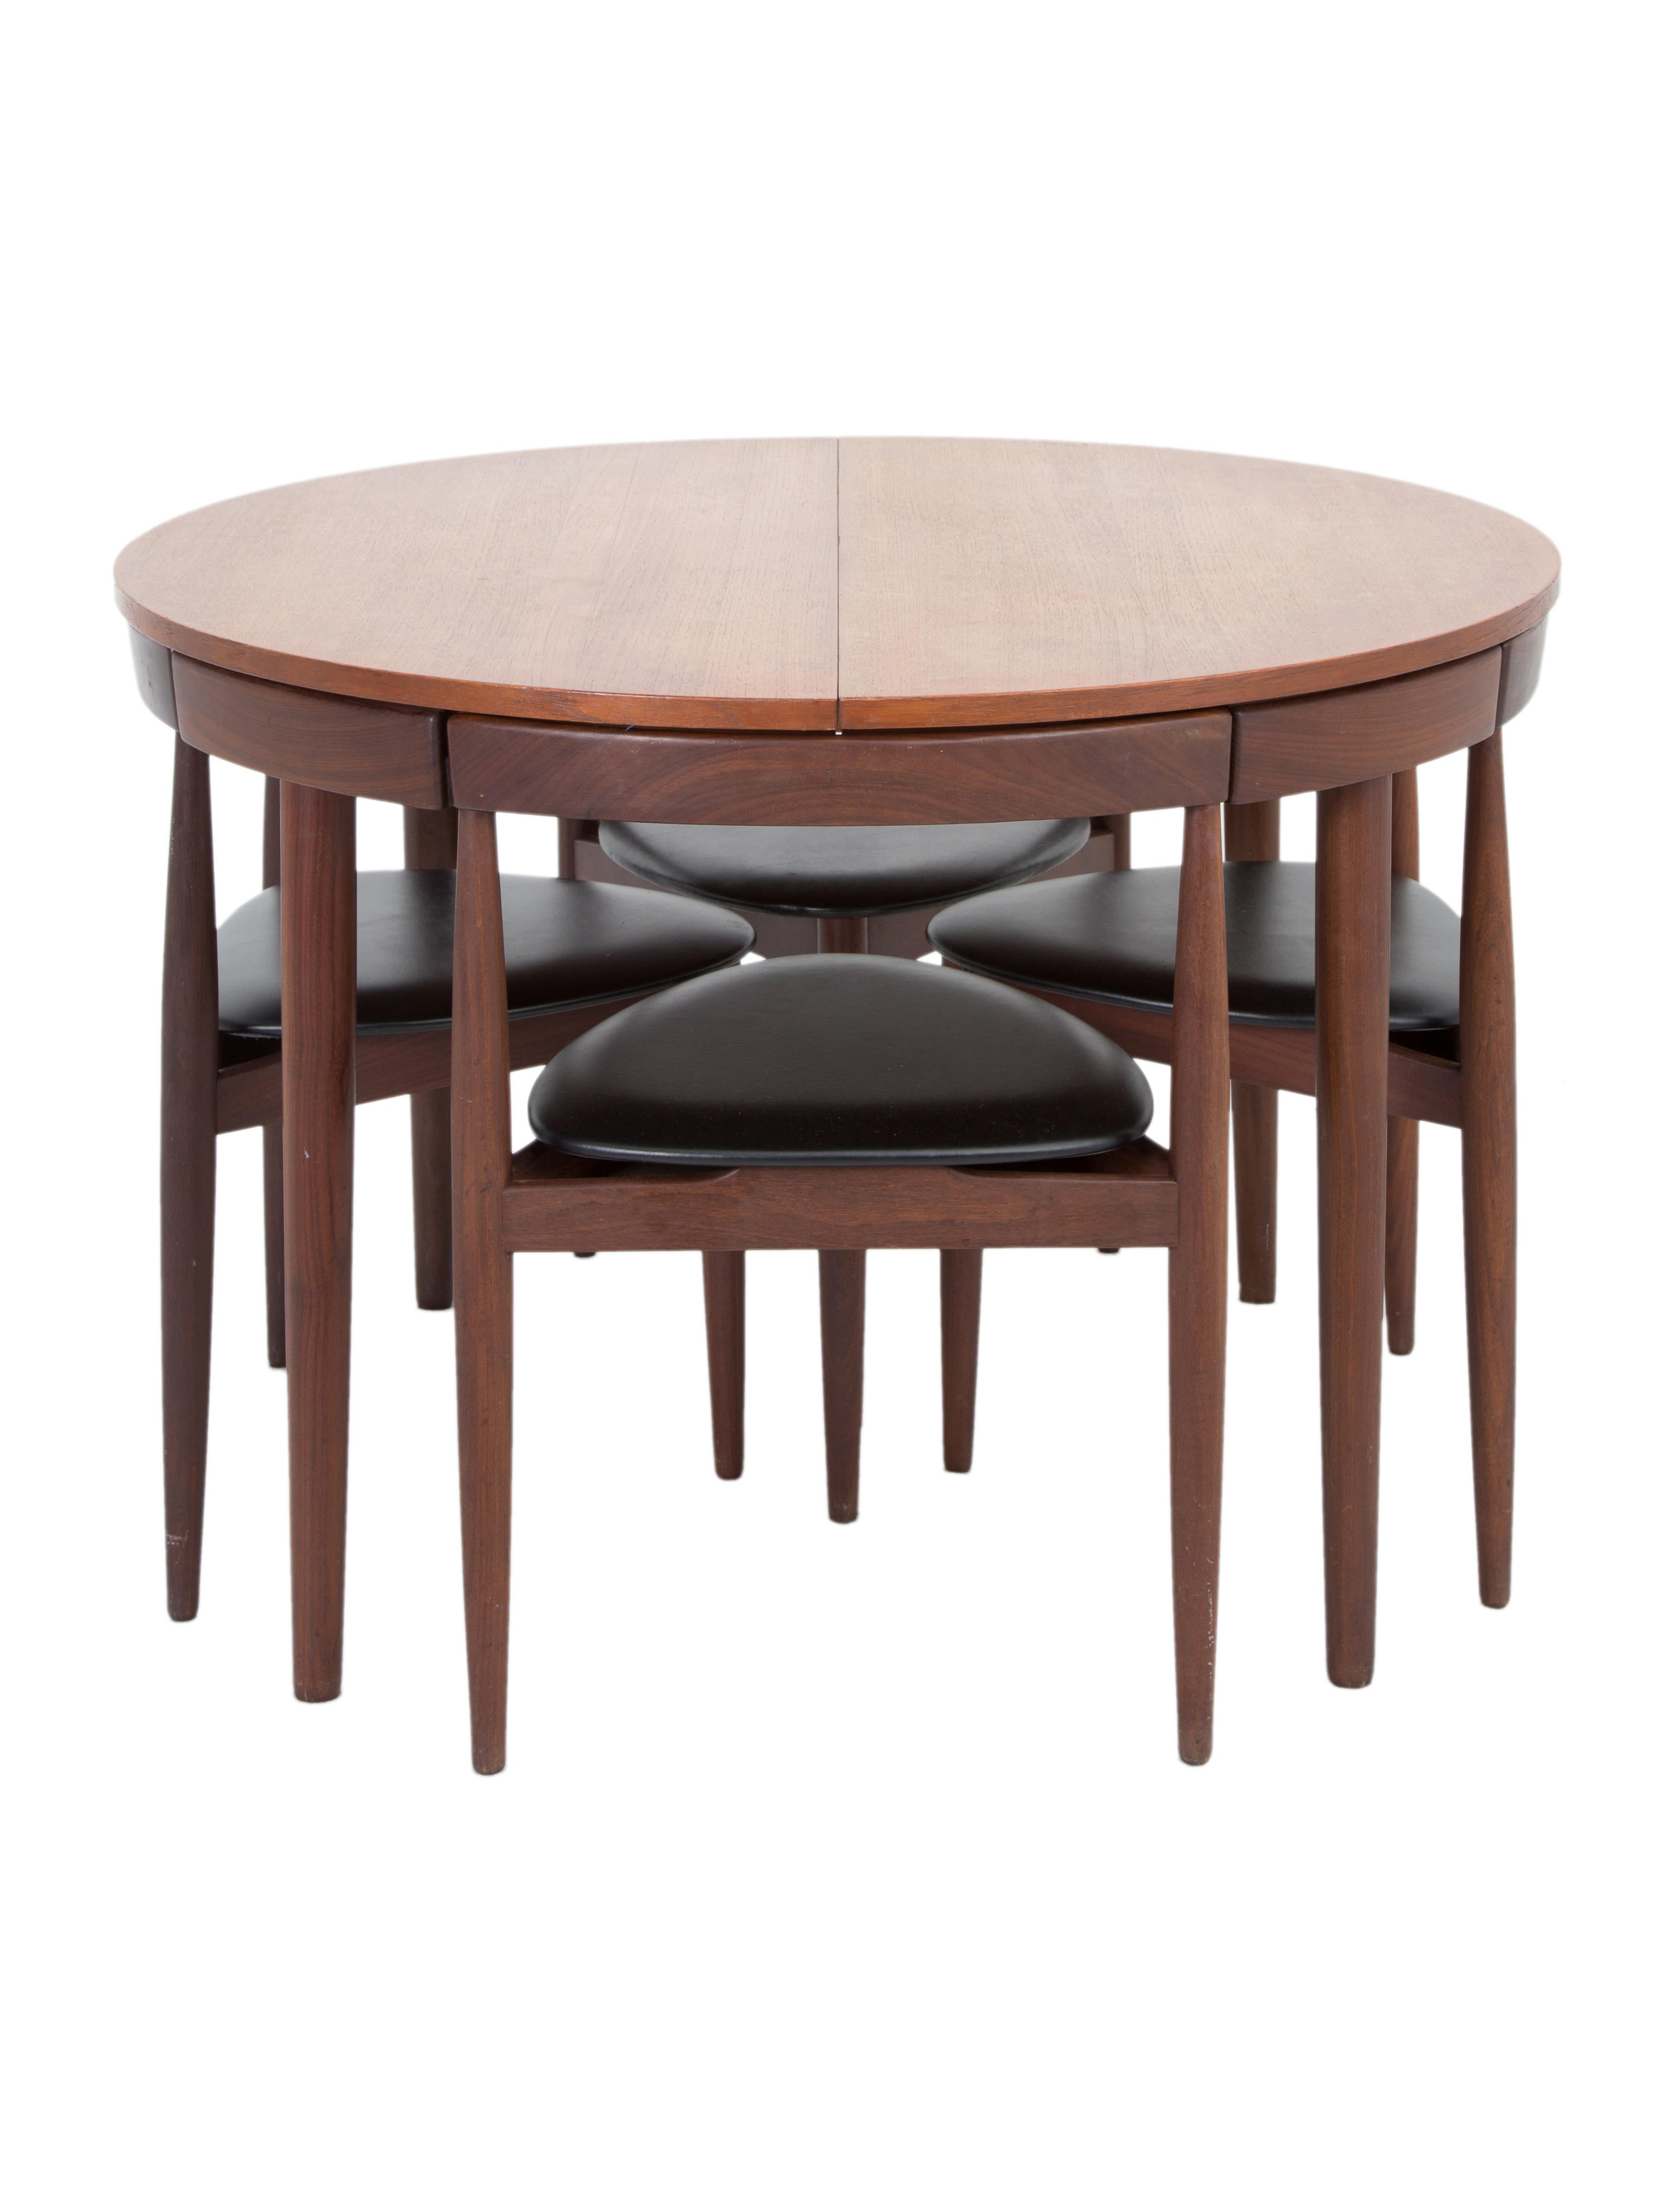 Hans Olsen Dining Table U0026 Chairs